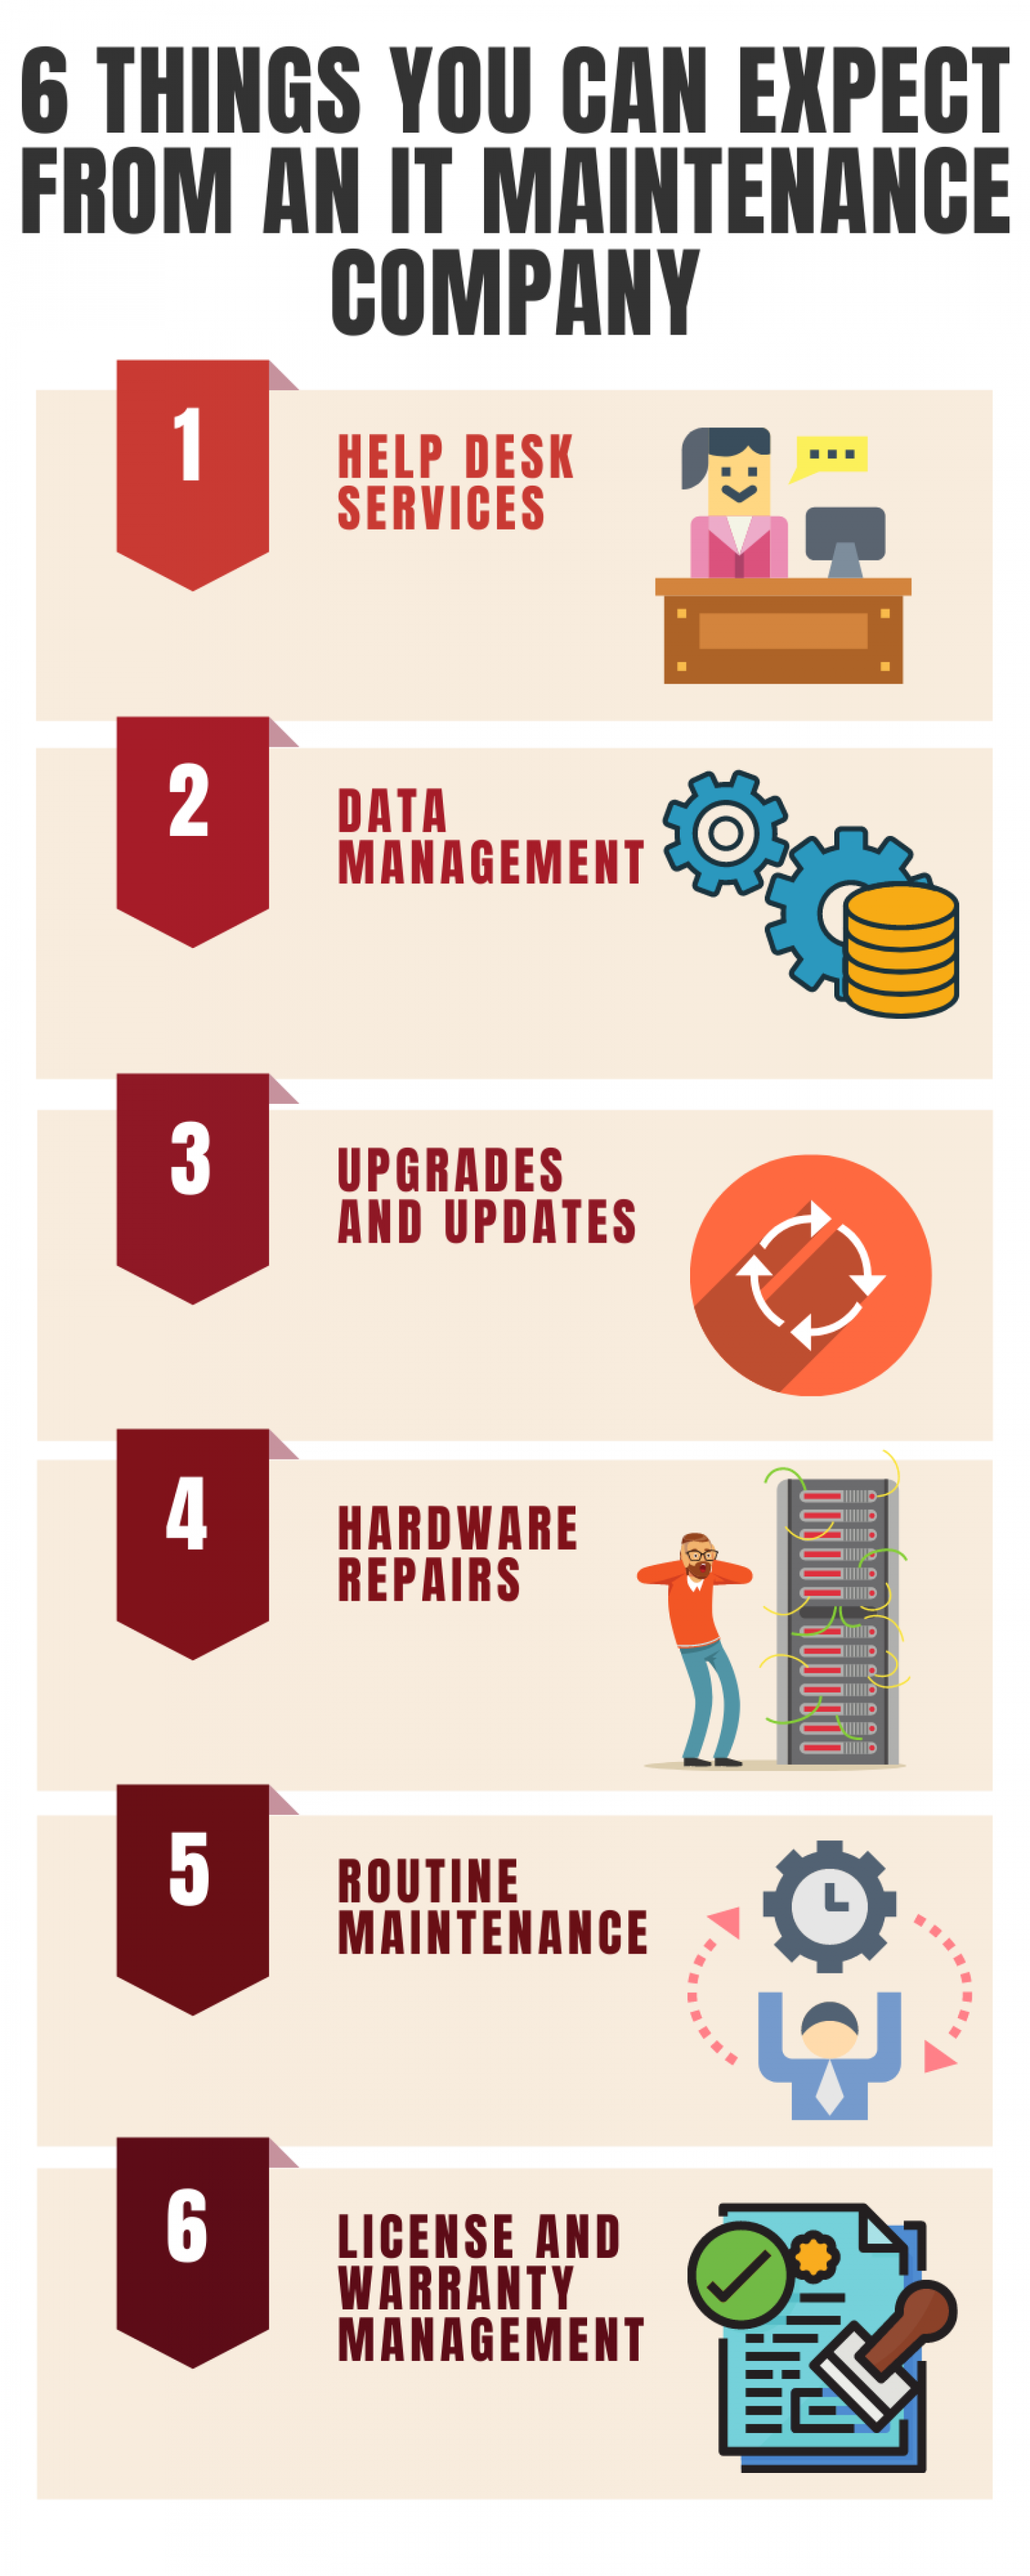 6 Things You Can Expect From an IT Maintenance Company Infographic